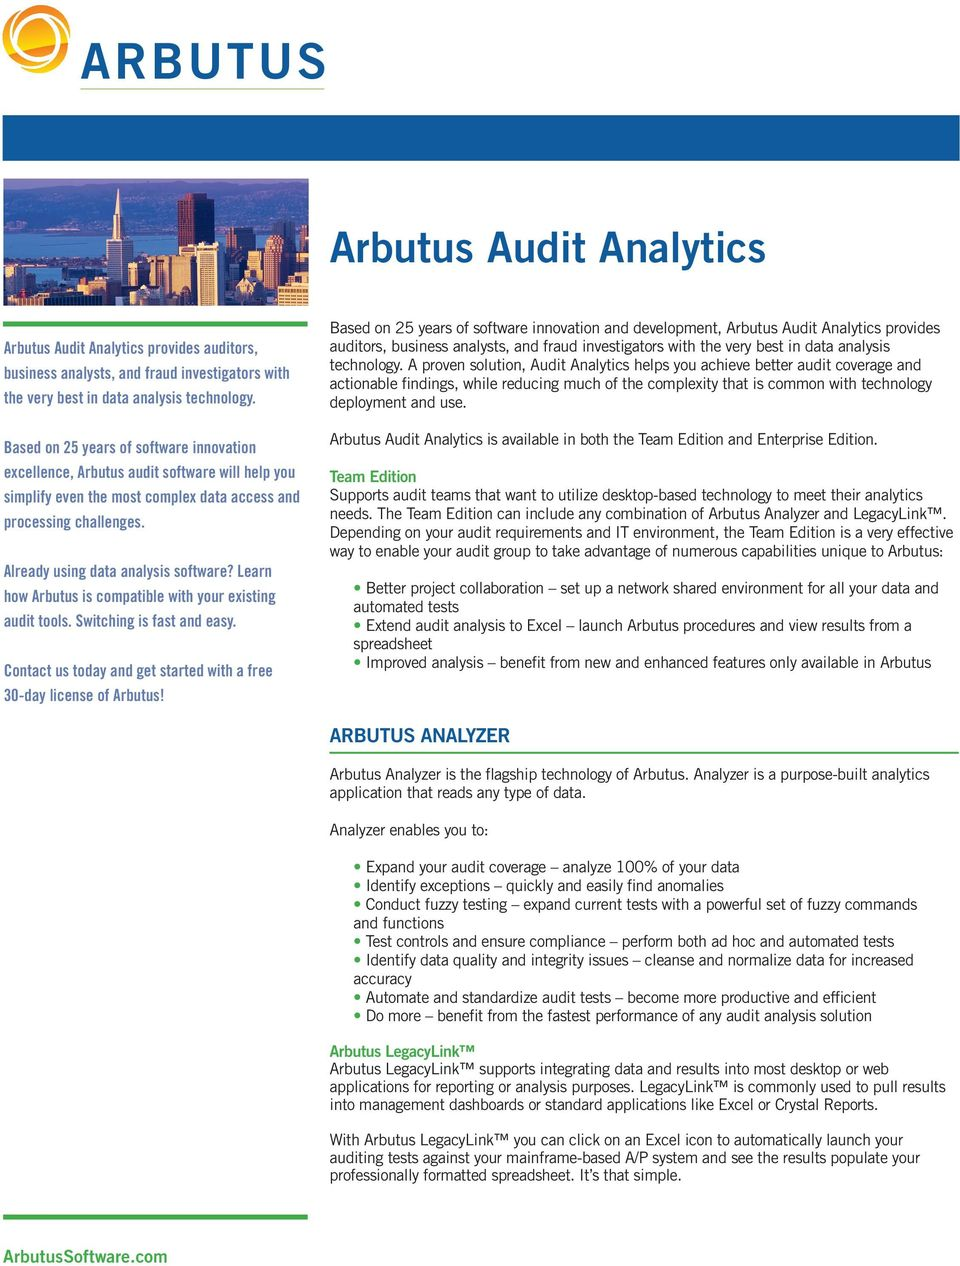 Learn how Arbutus is compatible with your existing audit tools. Switching is fast and easy. Contact us today and get started with a free 30-day license of Arbutus!